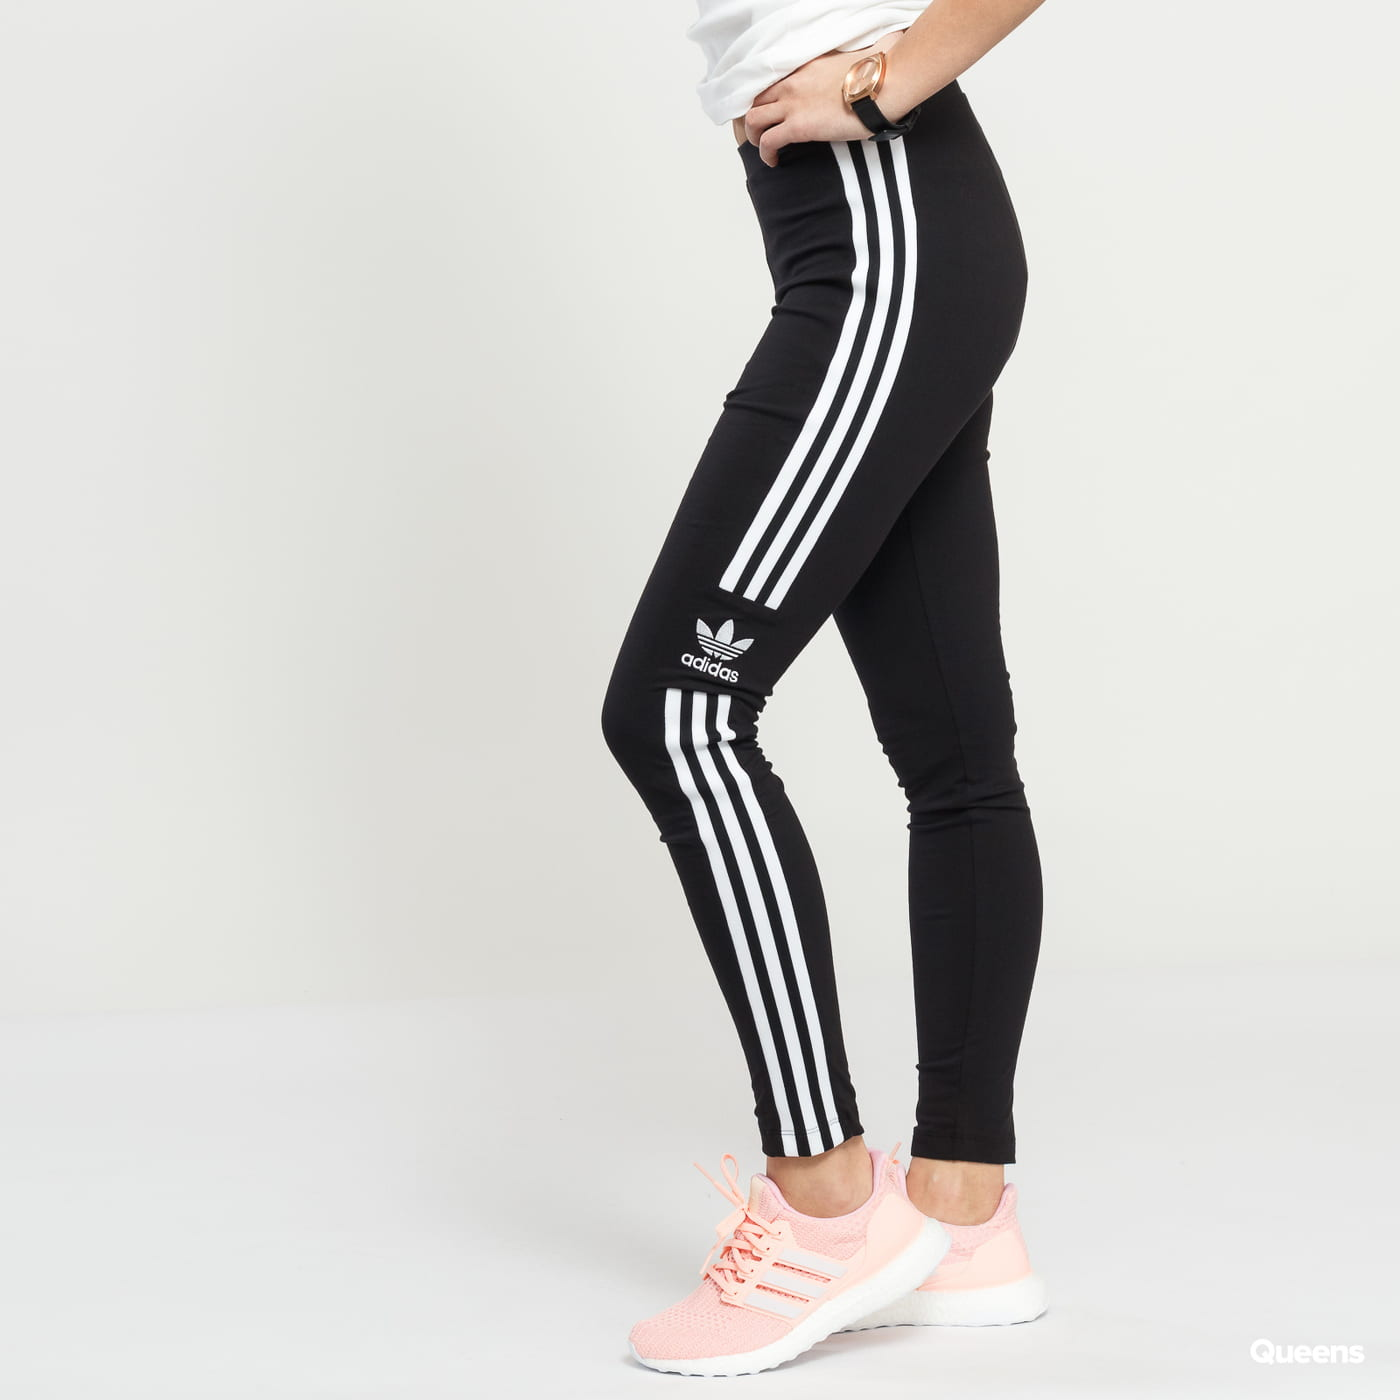 adidas Originals Trefoil Tight čierne